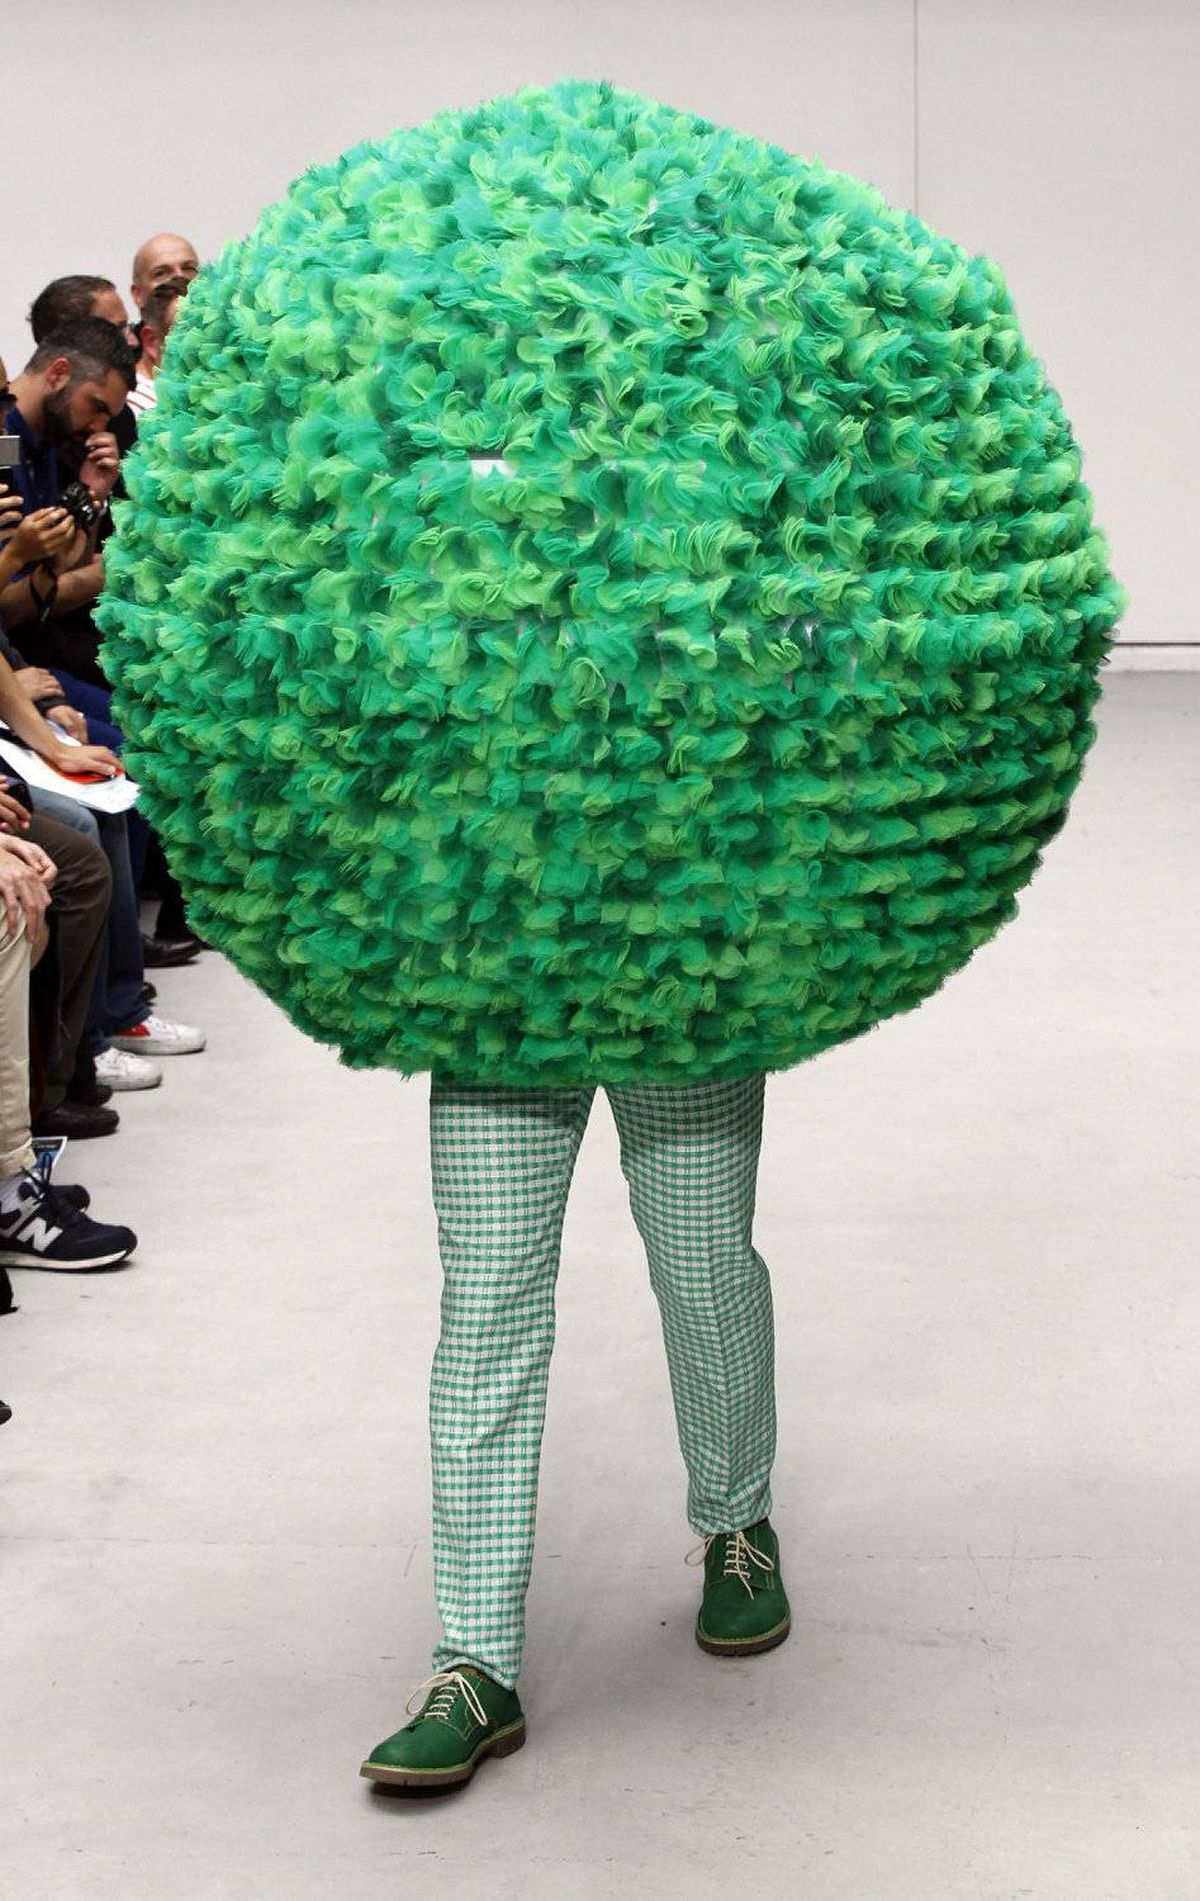 And this, by far, was the the best fashion photo of 2011.